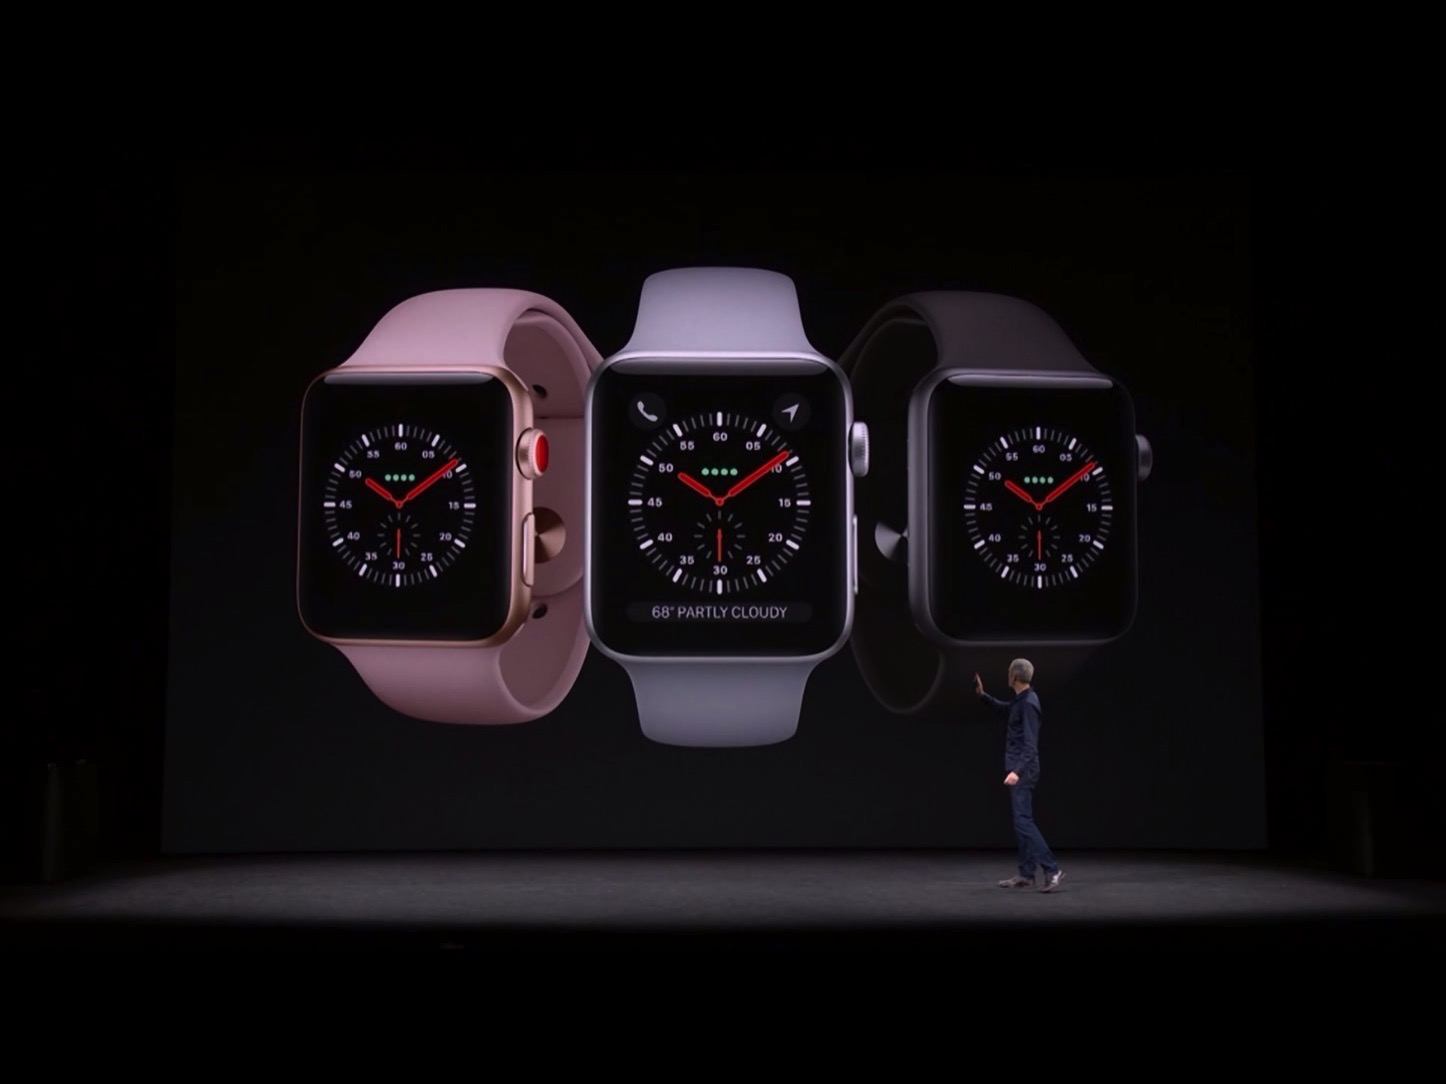 Apple-Watch-Series-3-18.jpg